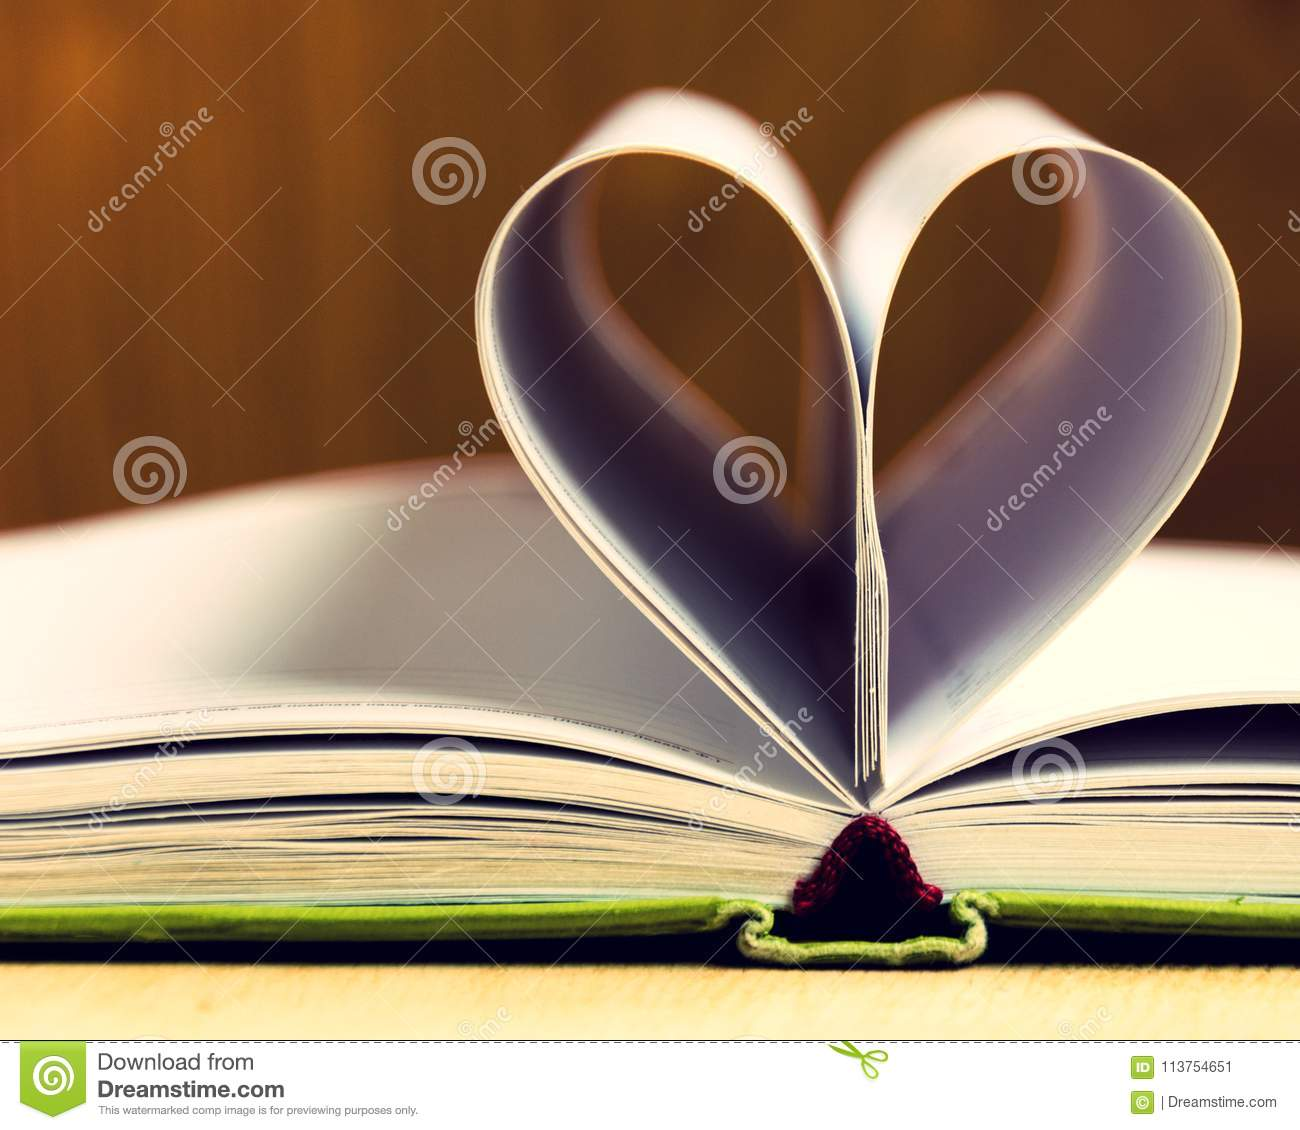 Love paper heart is made from the book`s pages empty pages of life